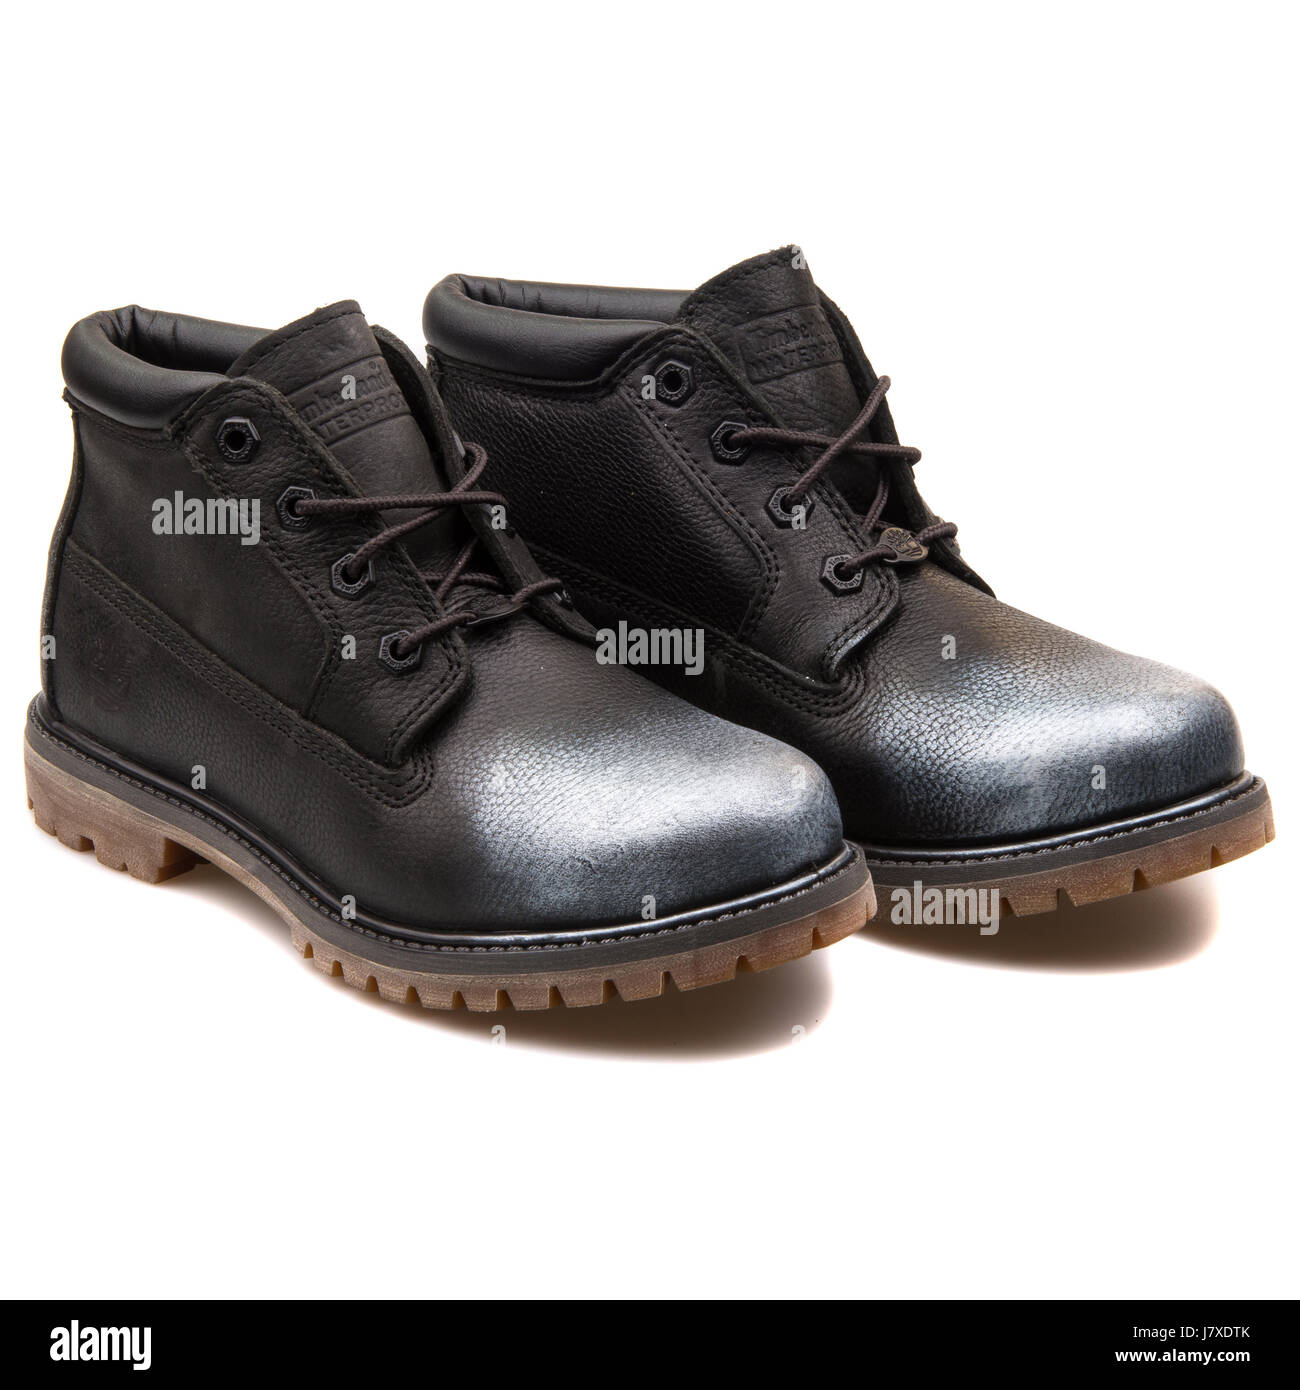 0c3ea6c6c830 Timberland Nellie Chukka Double Sole Waterproof Black Women s Leather Boots  - A12PK